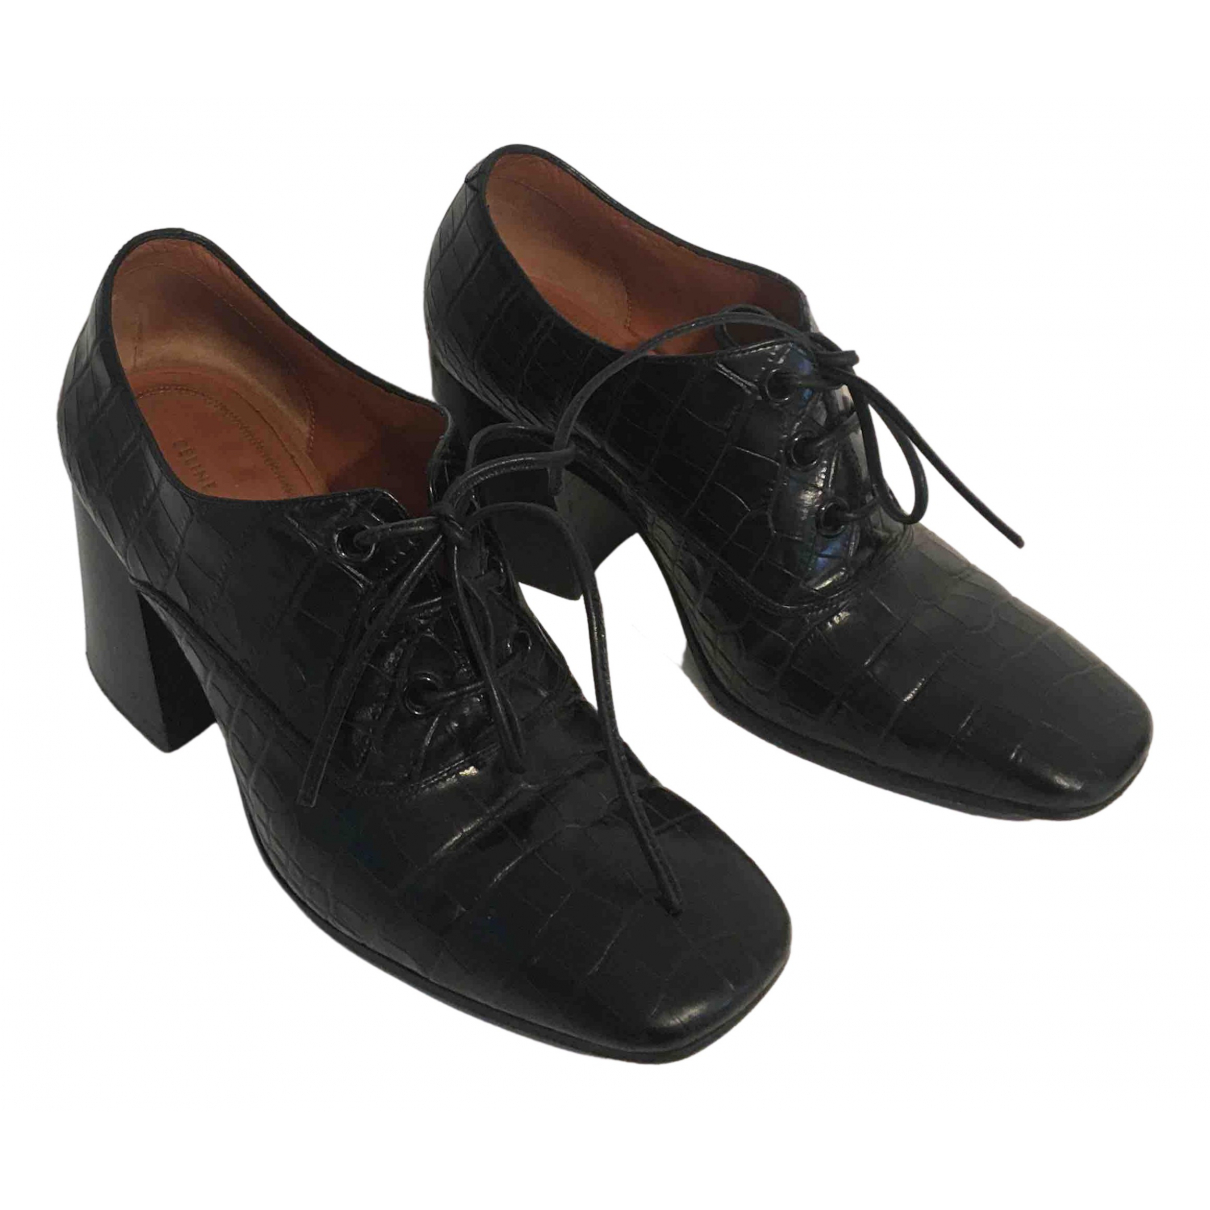 Celine \N Black Leather Lace ups for Women 36.5 EU